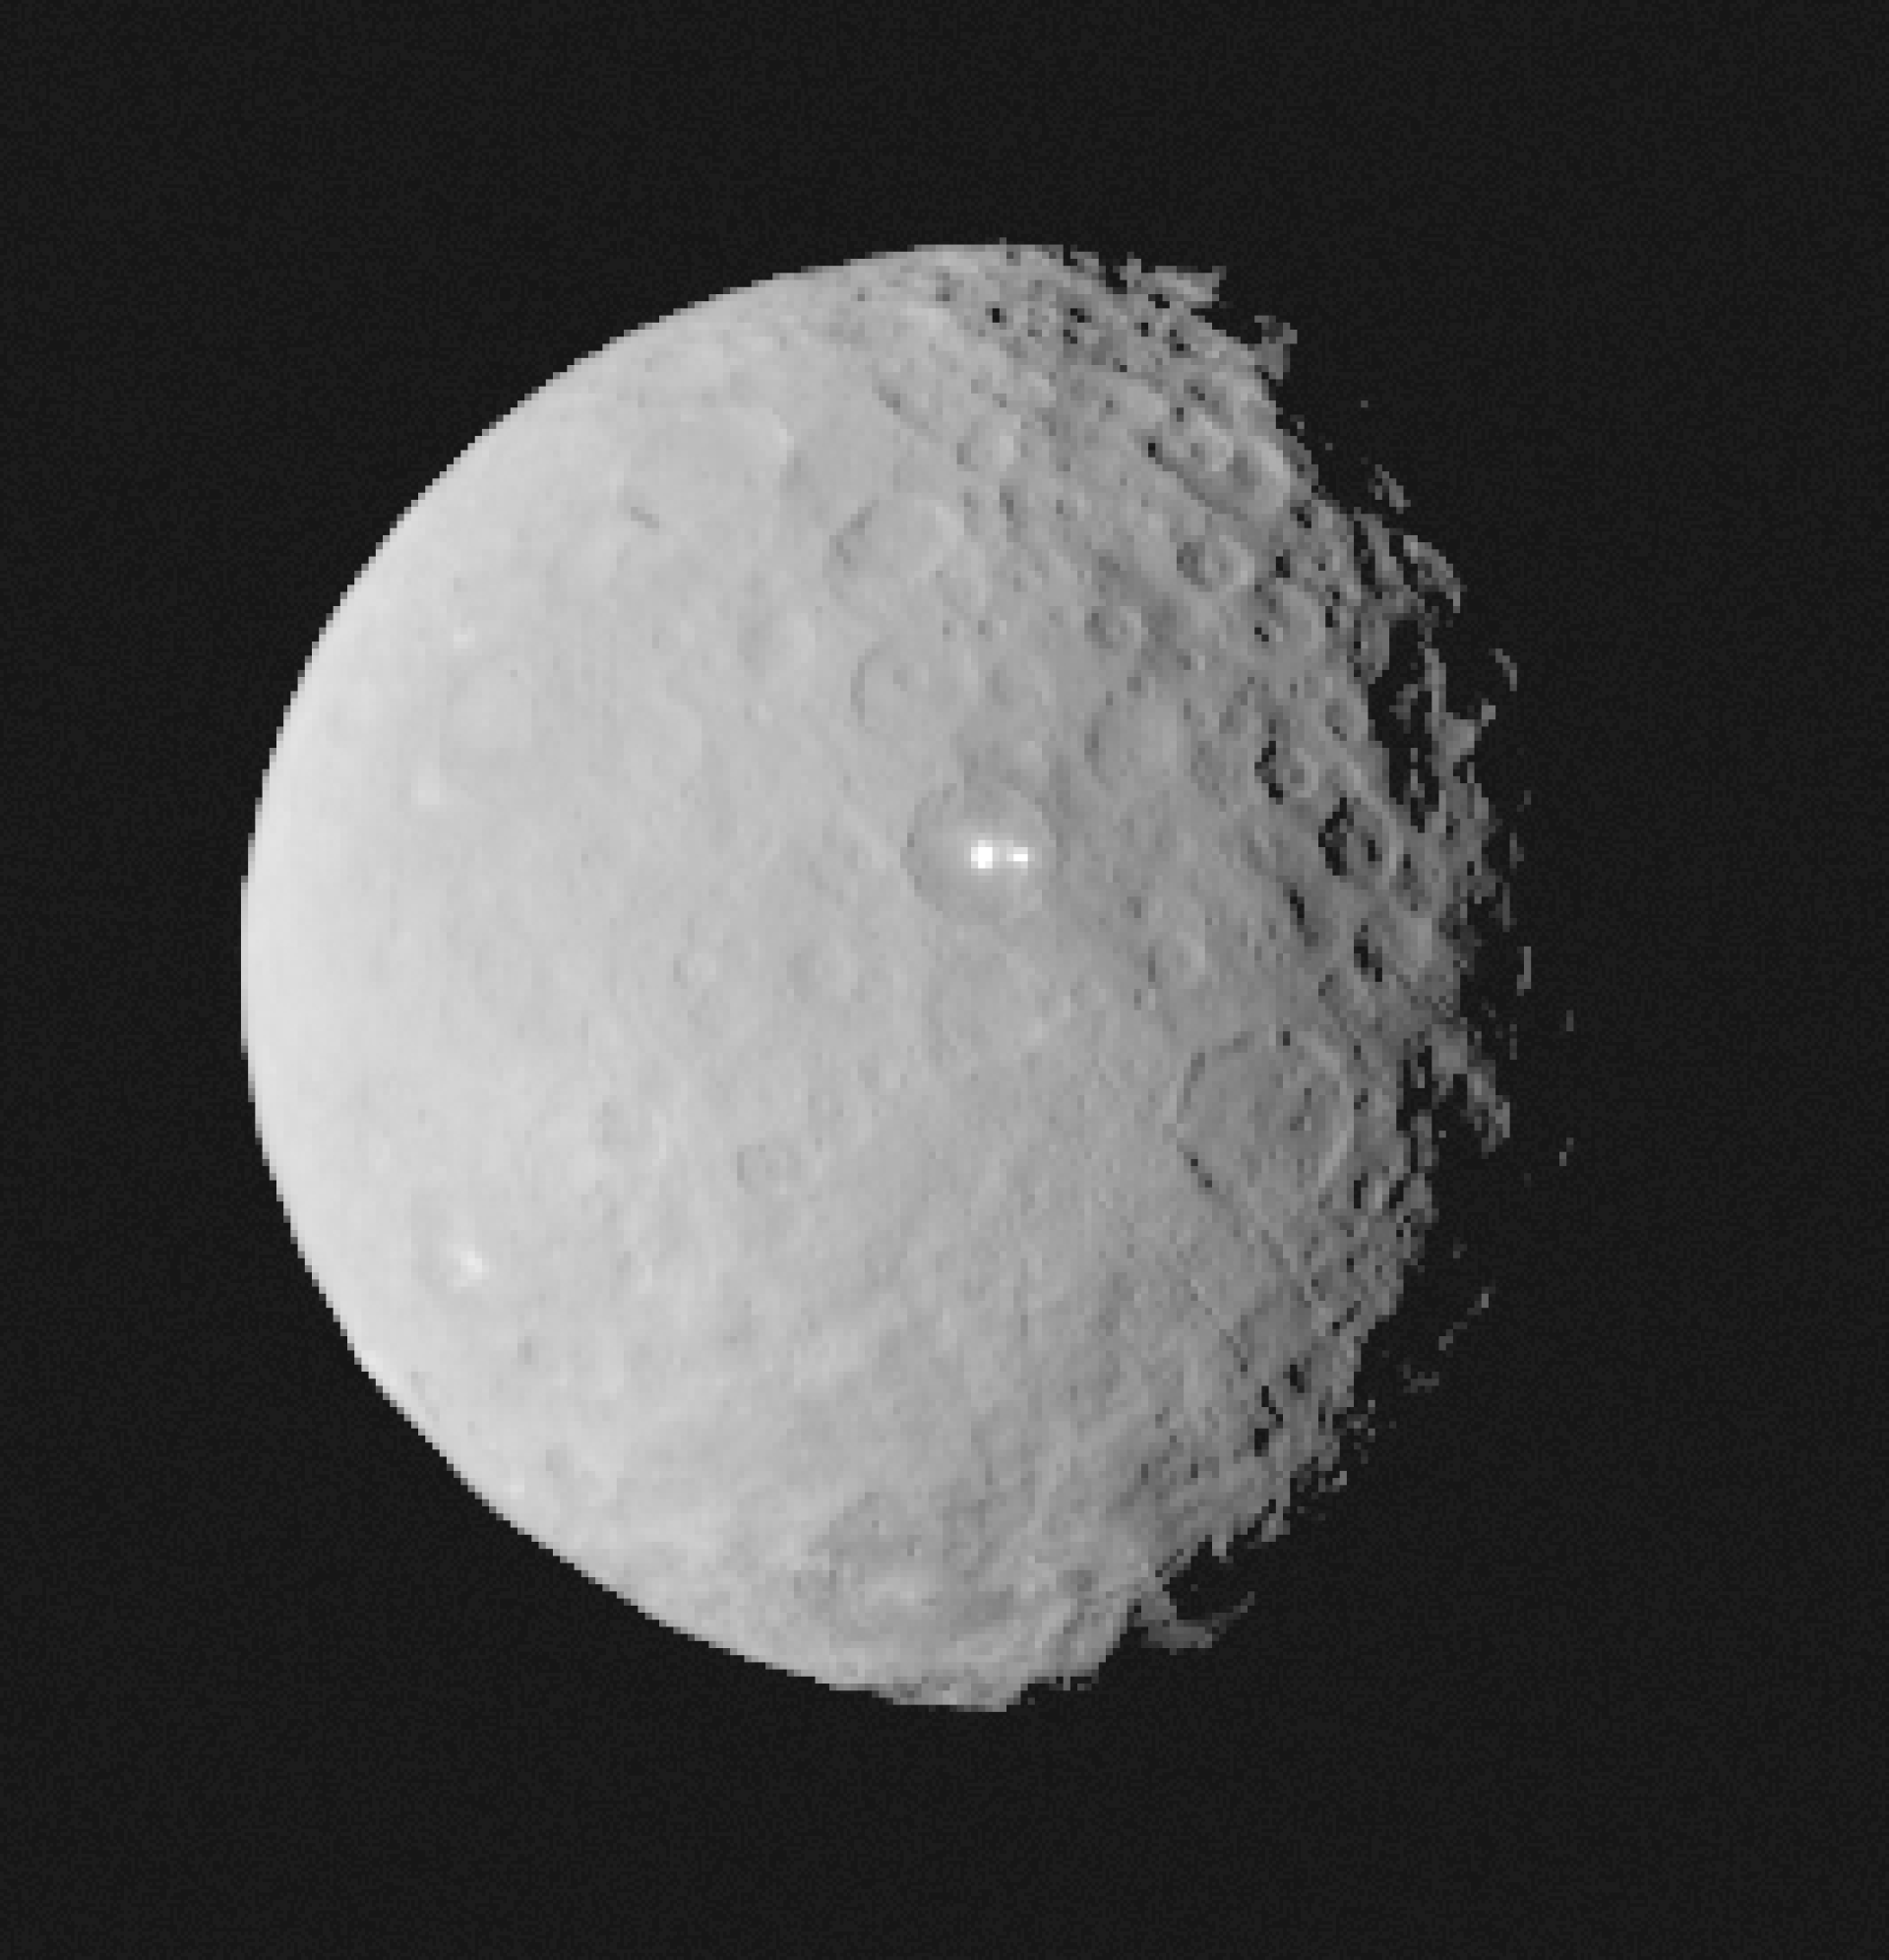 Bright patches on Ceres